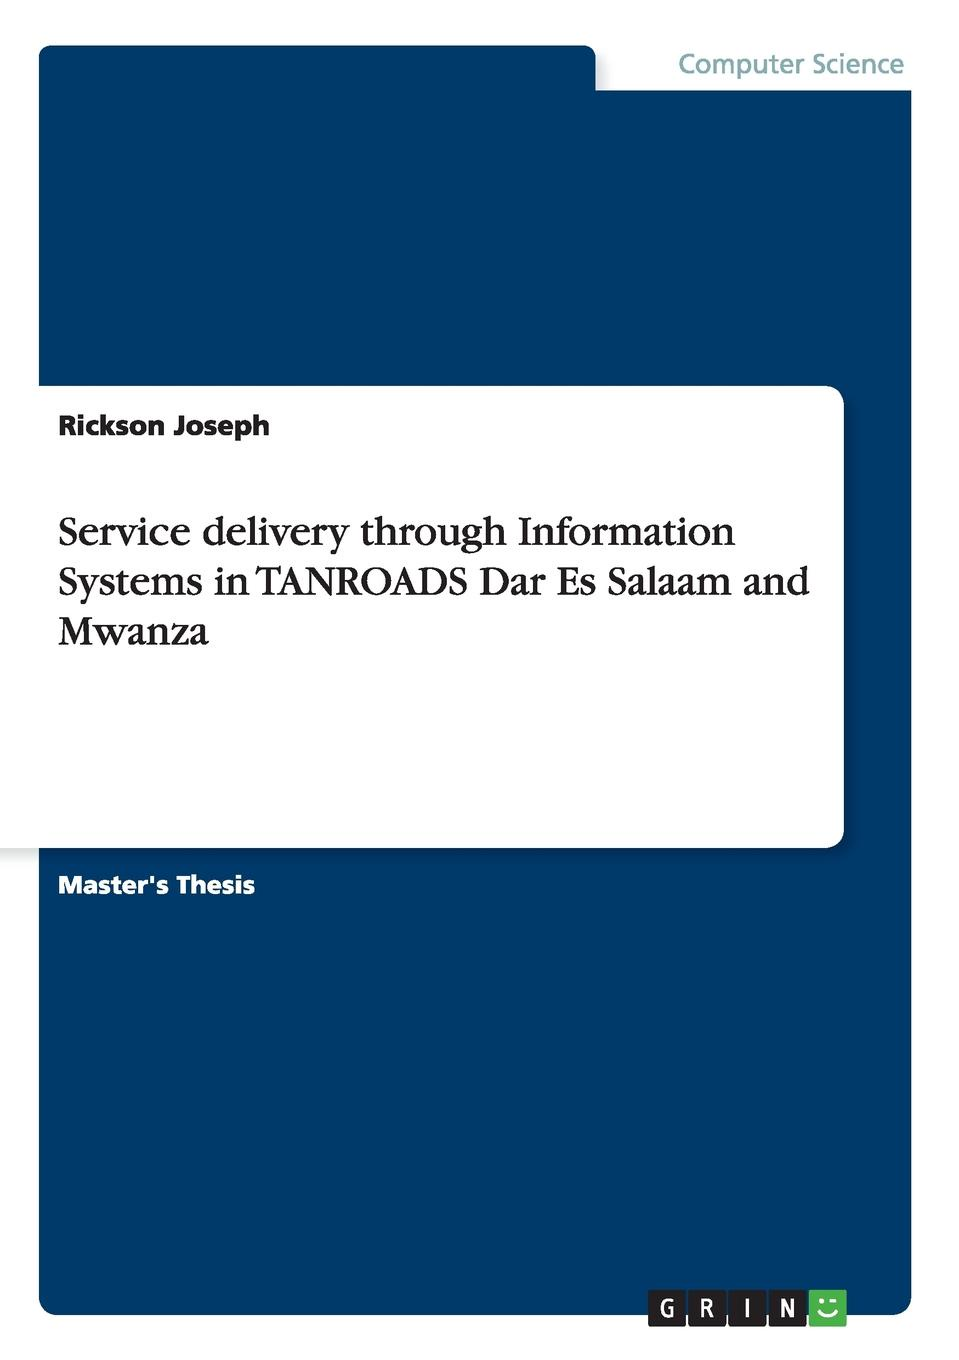 Rickson Joseph Service delivery through Information Systems in TANROADS Dar Es Salaam and Mwanza implementation the key to successful information systems